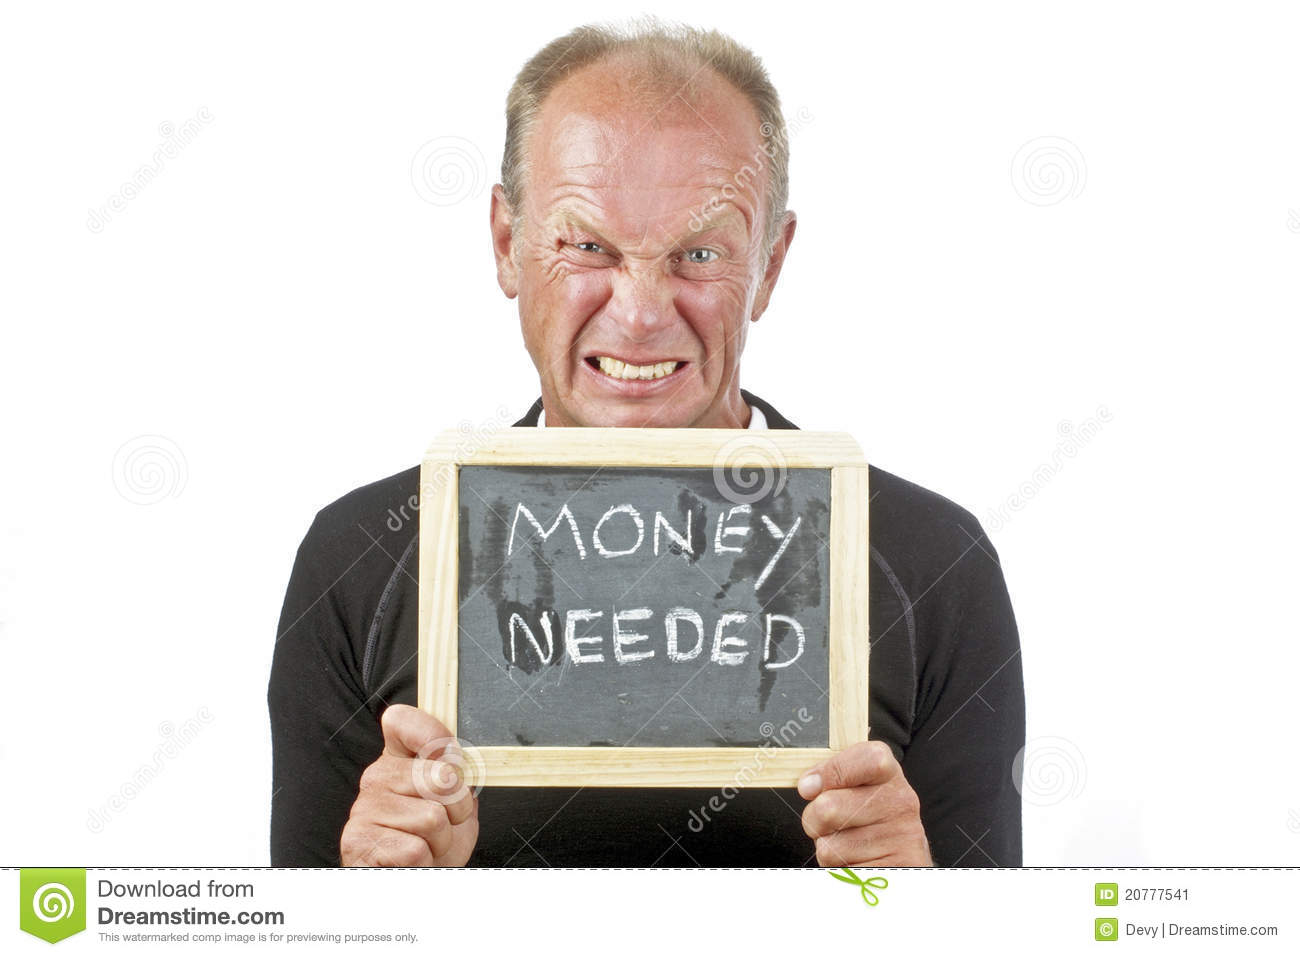 Best payday loans 2014 - reviewed and ranked